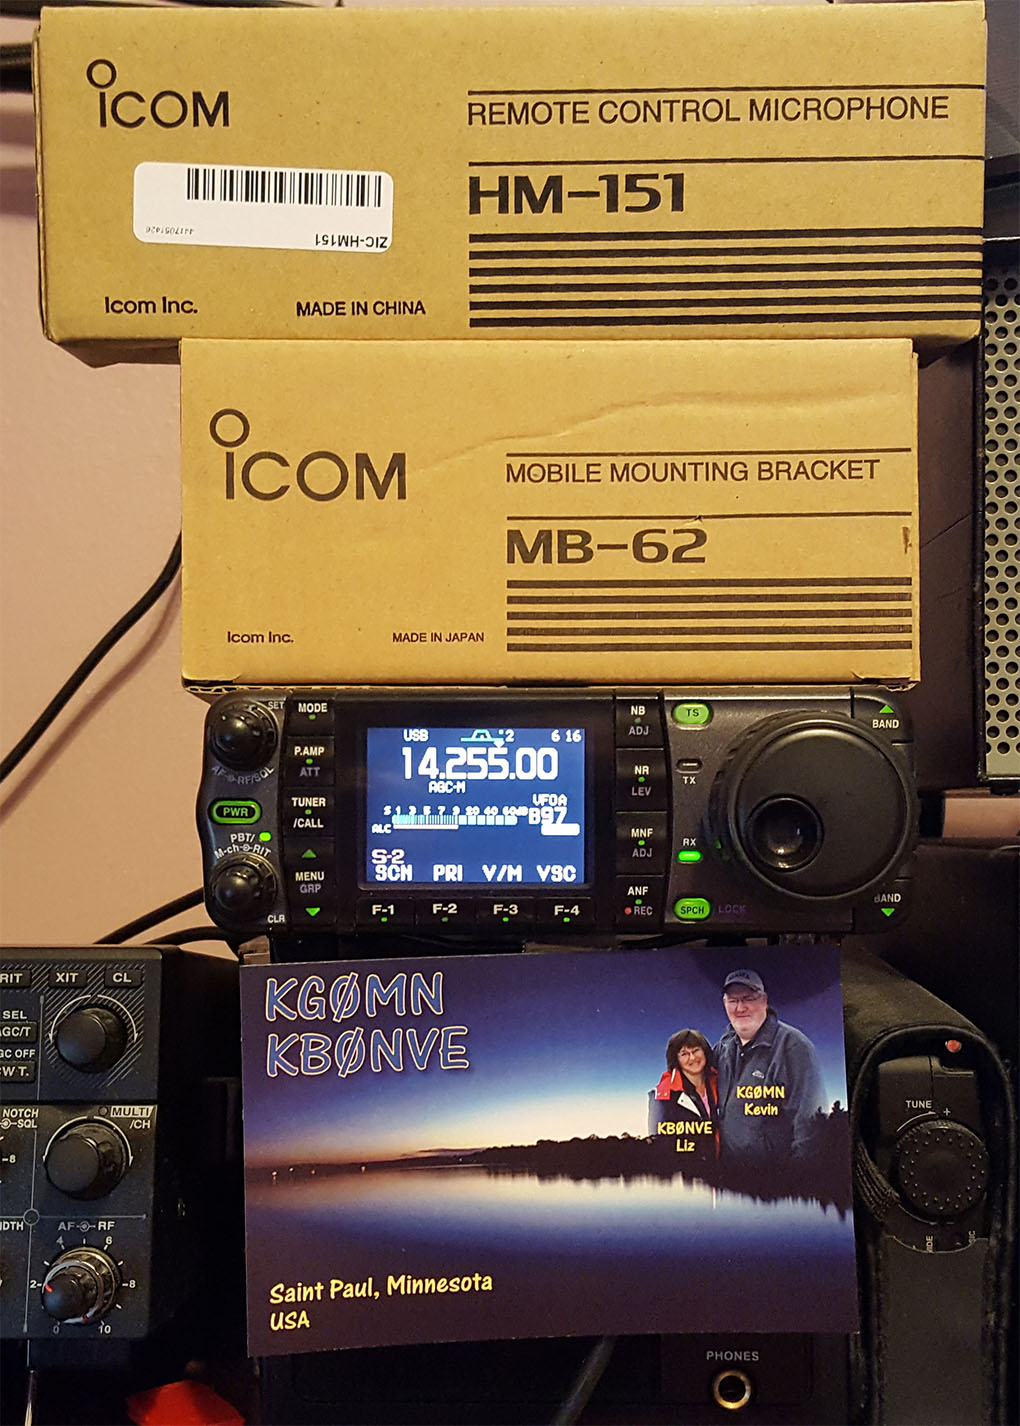 For Sale Icom Ic 7000 With Accessories Qrz Forums